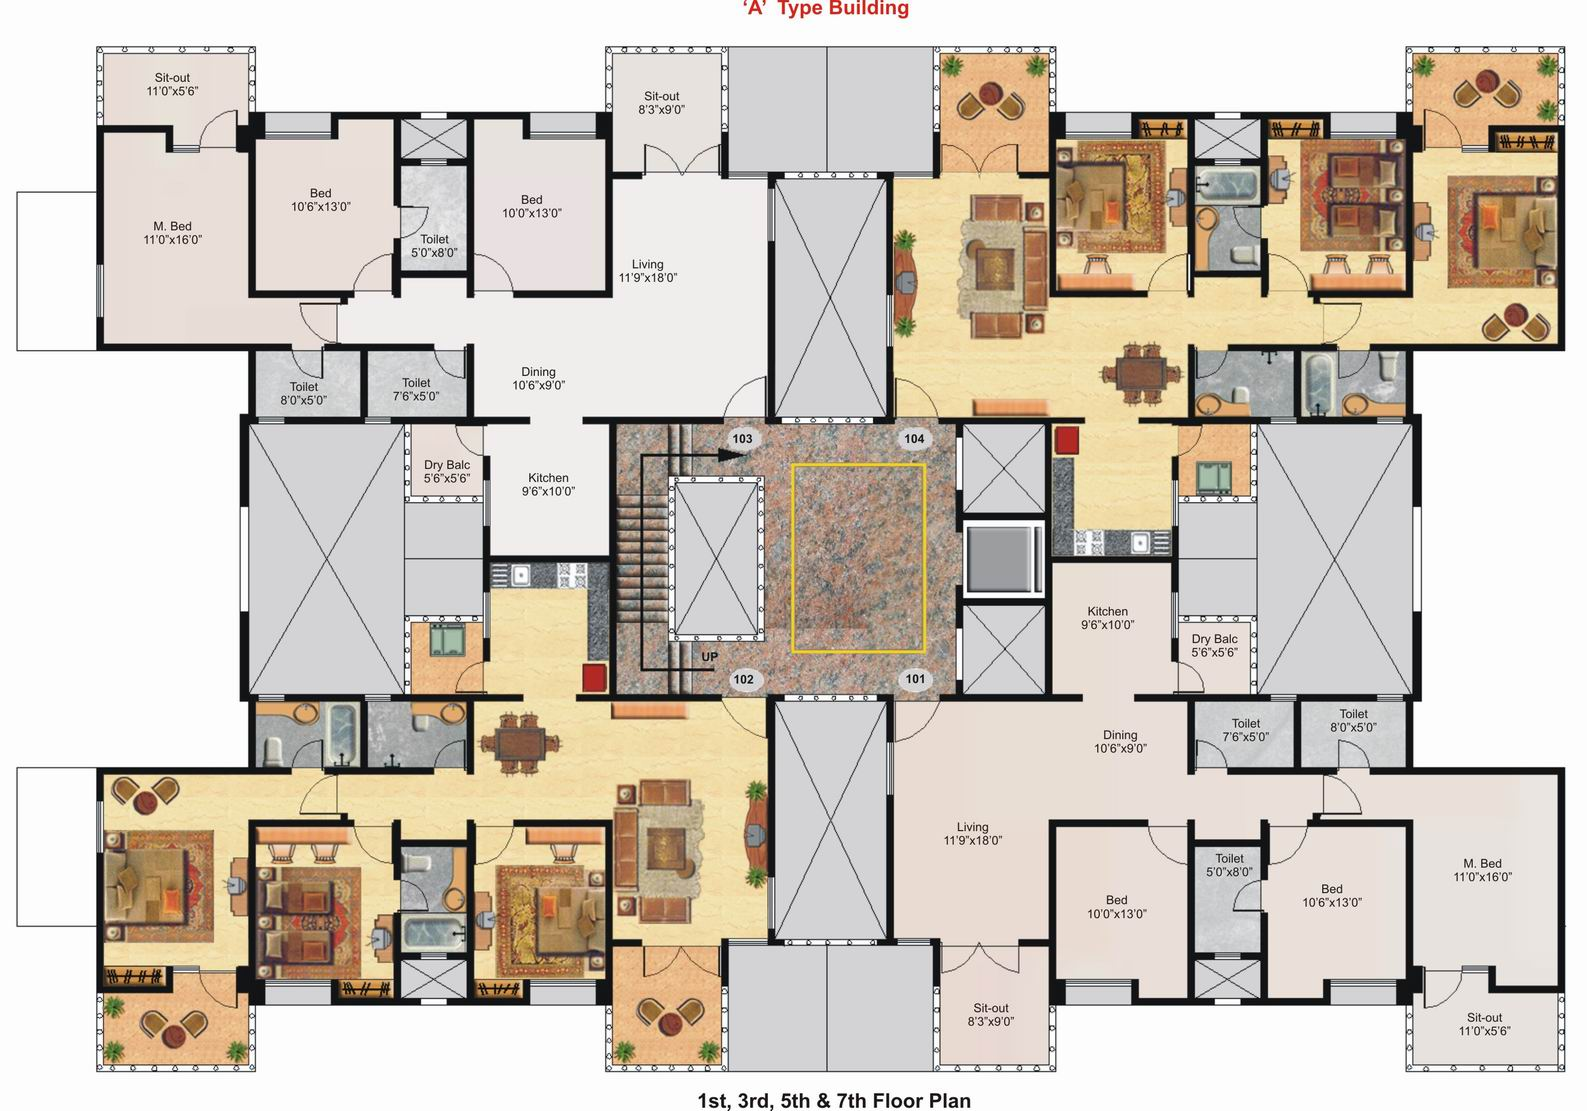 3d floor plan of a celeb mansion modern house - Bedroom house floor plans ...